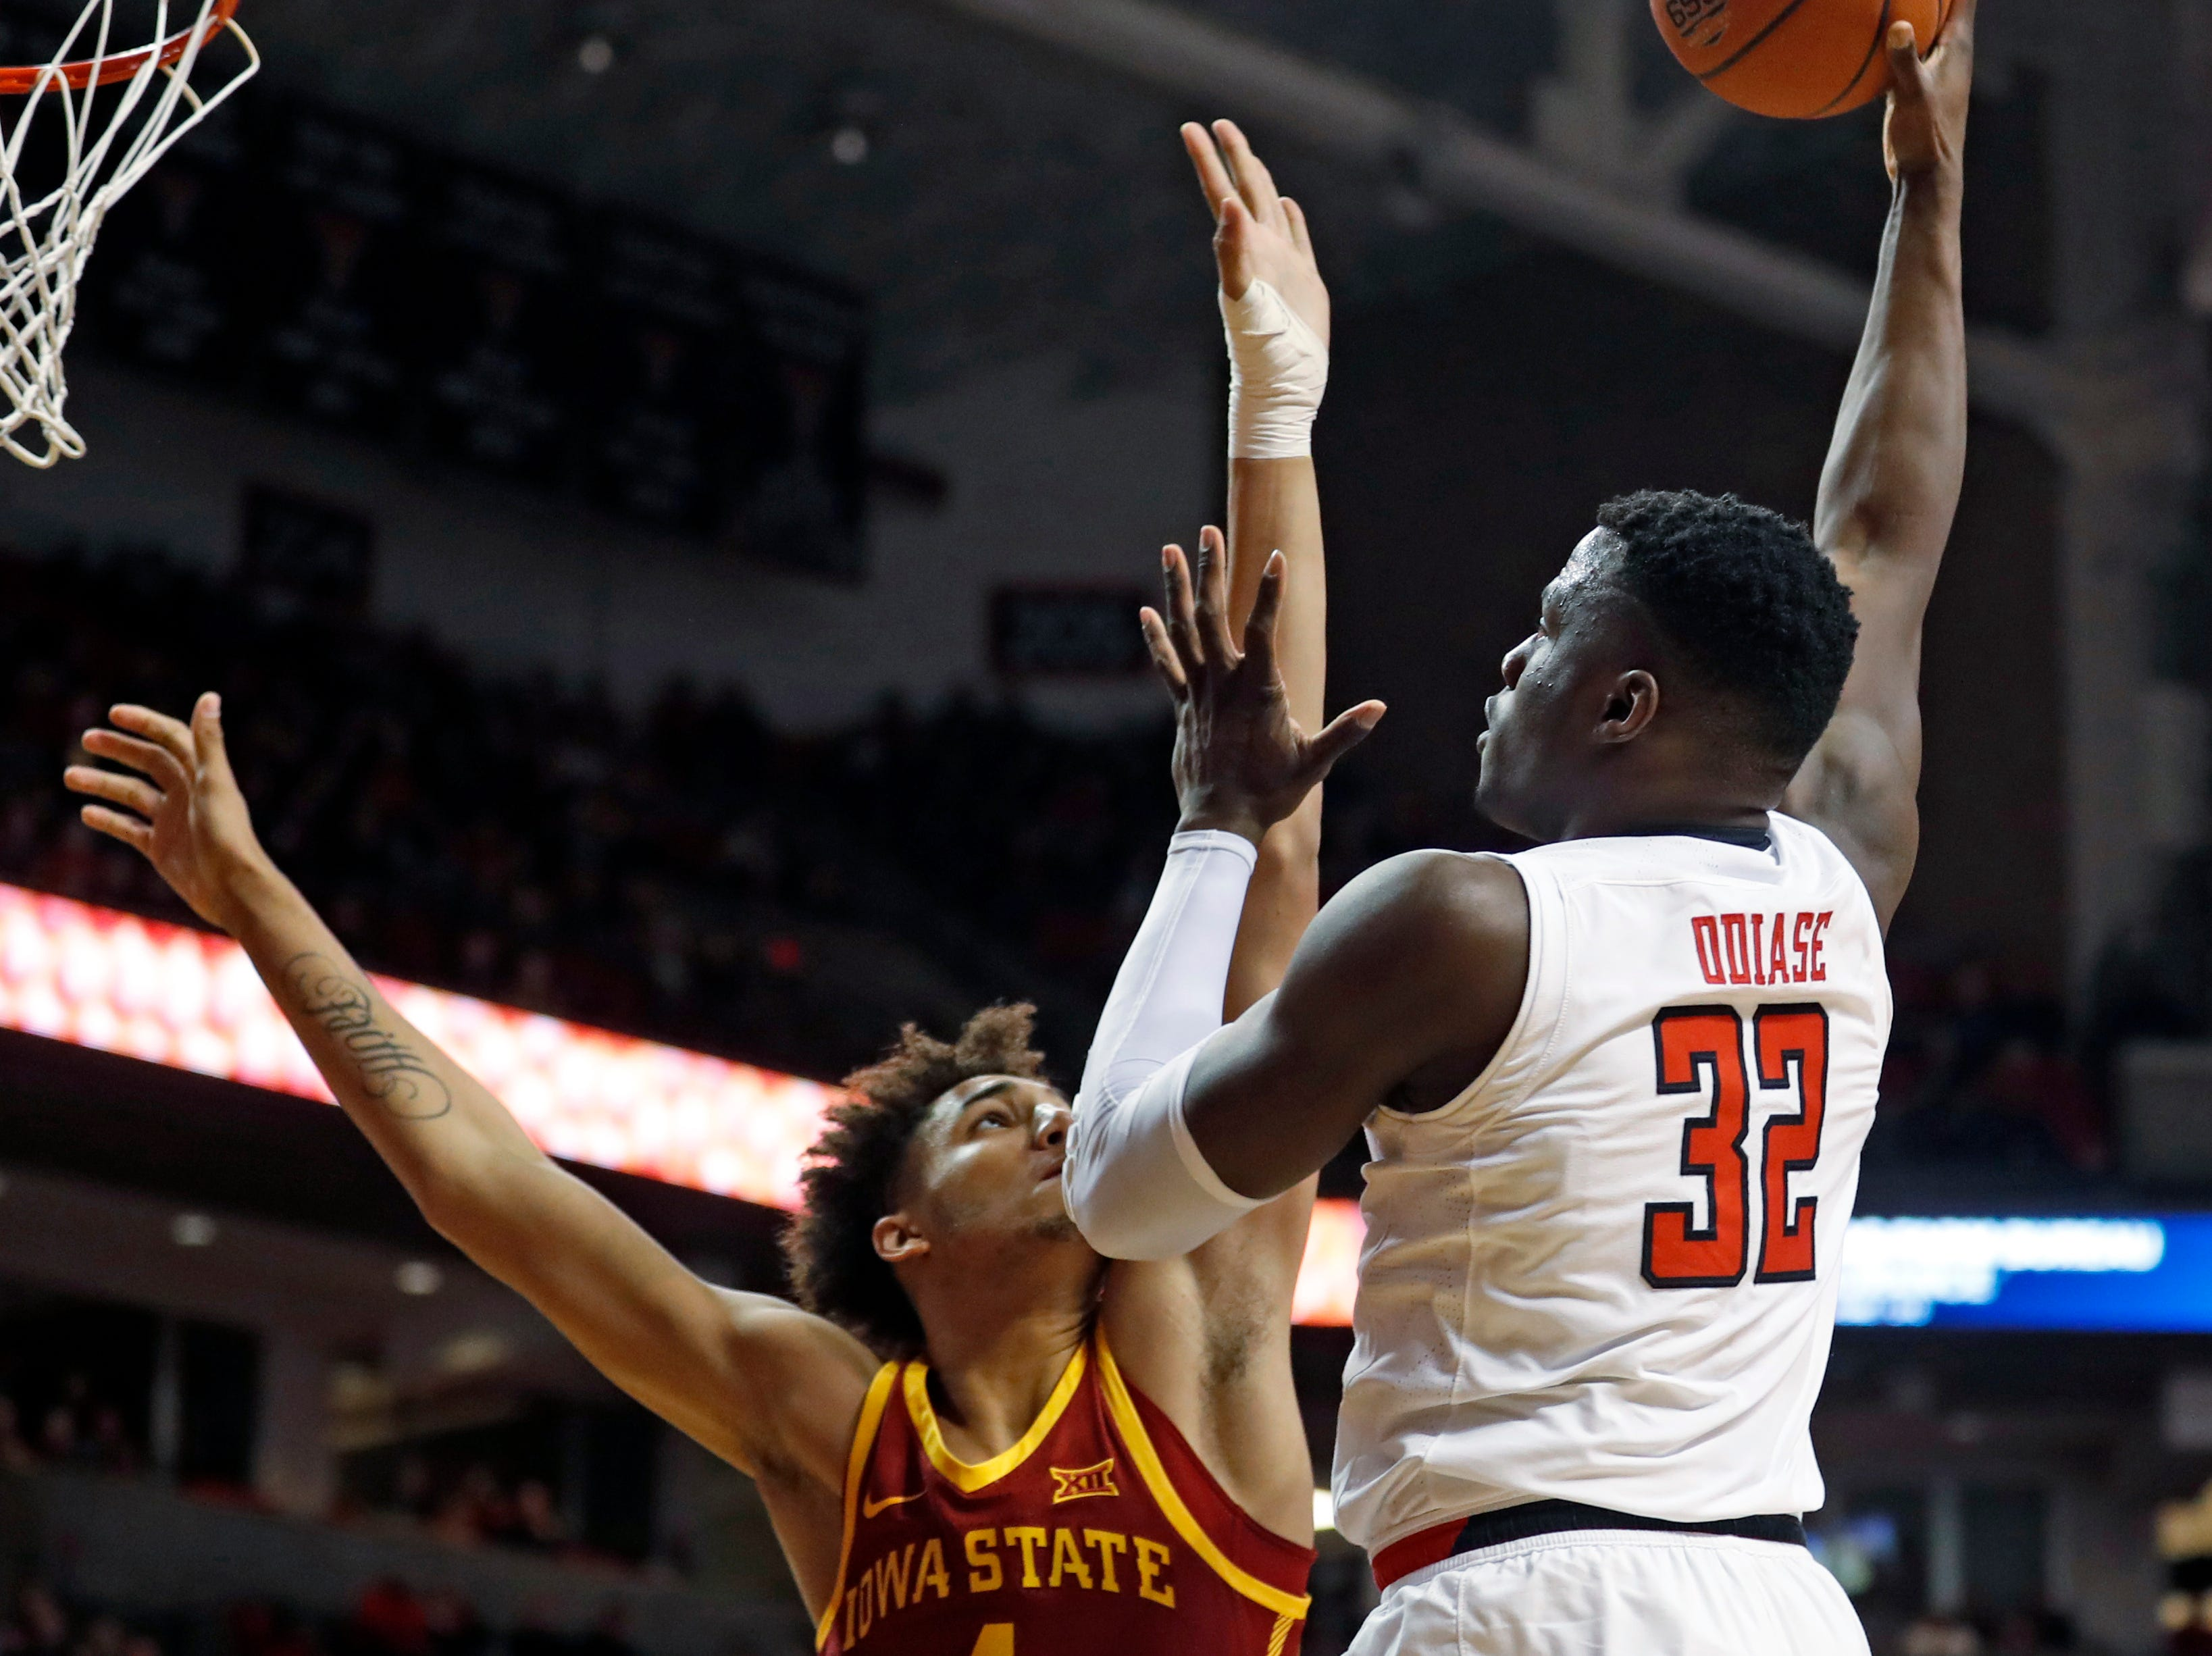 Texas Tech's Norense Odiase (32) shoots over Iowa State's George Conditt IV during the first half of an NCAA college basketball game Wednesday, Jan. 16, 2019, in Lubbock, Texas.